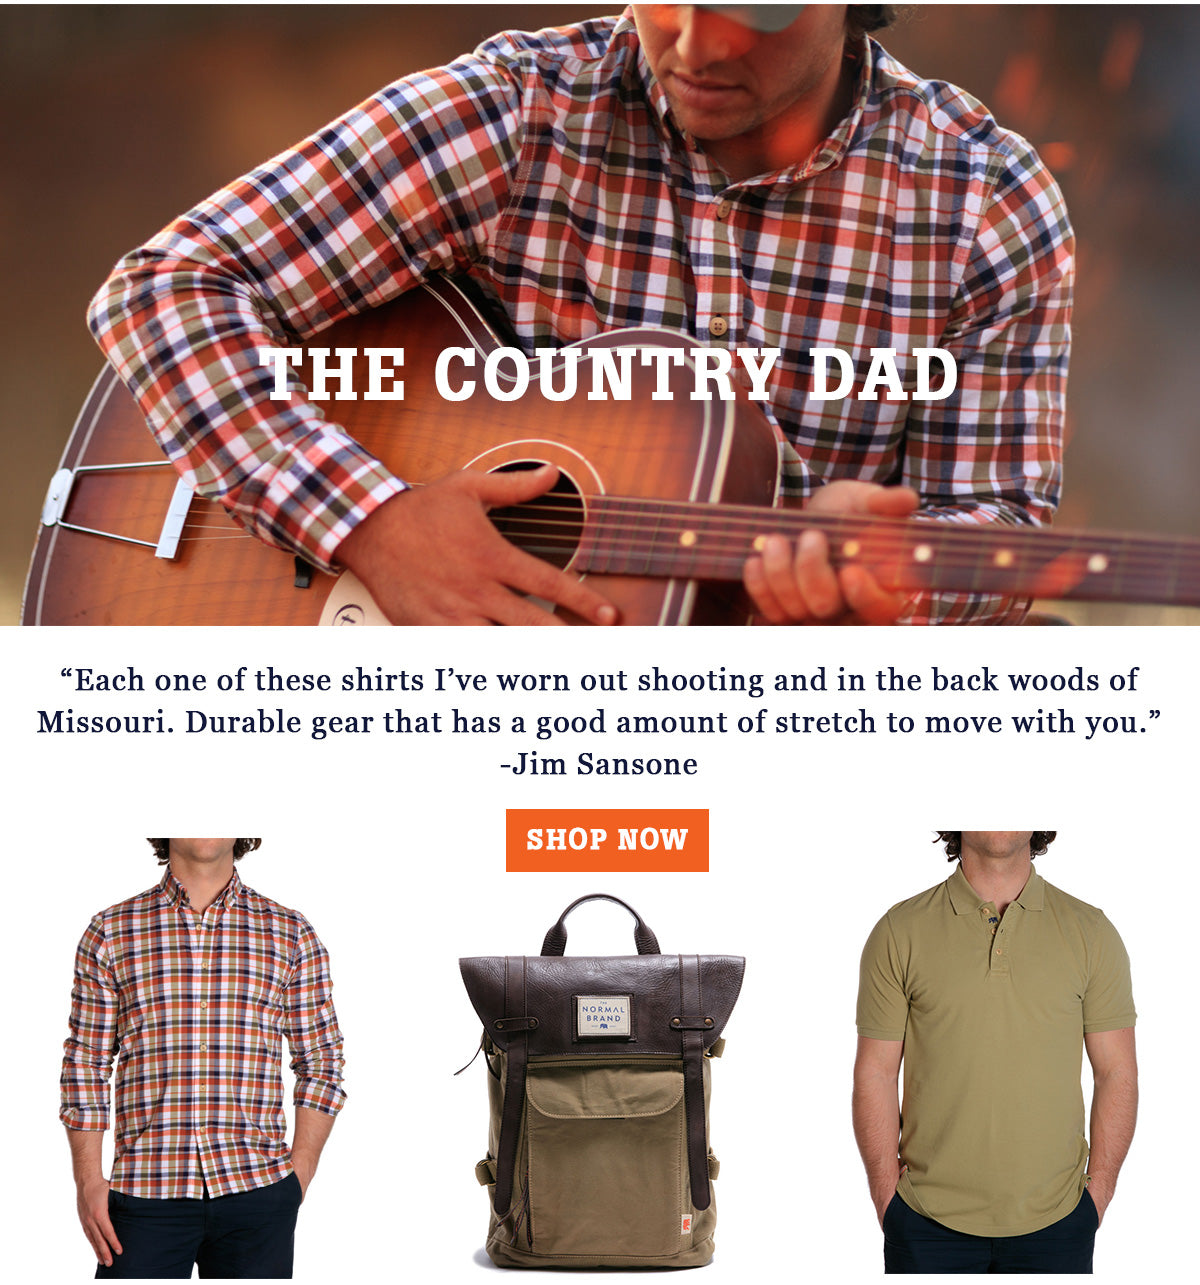 The Country Dad